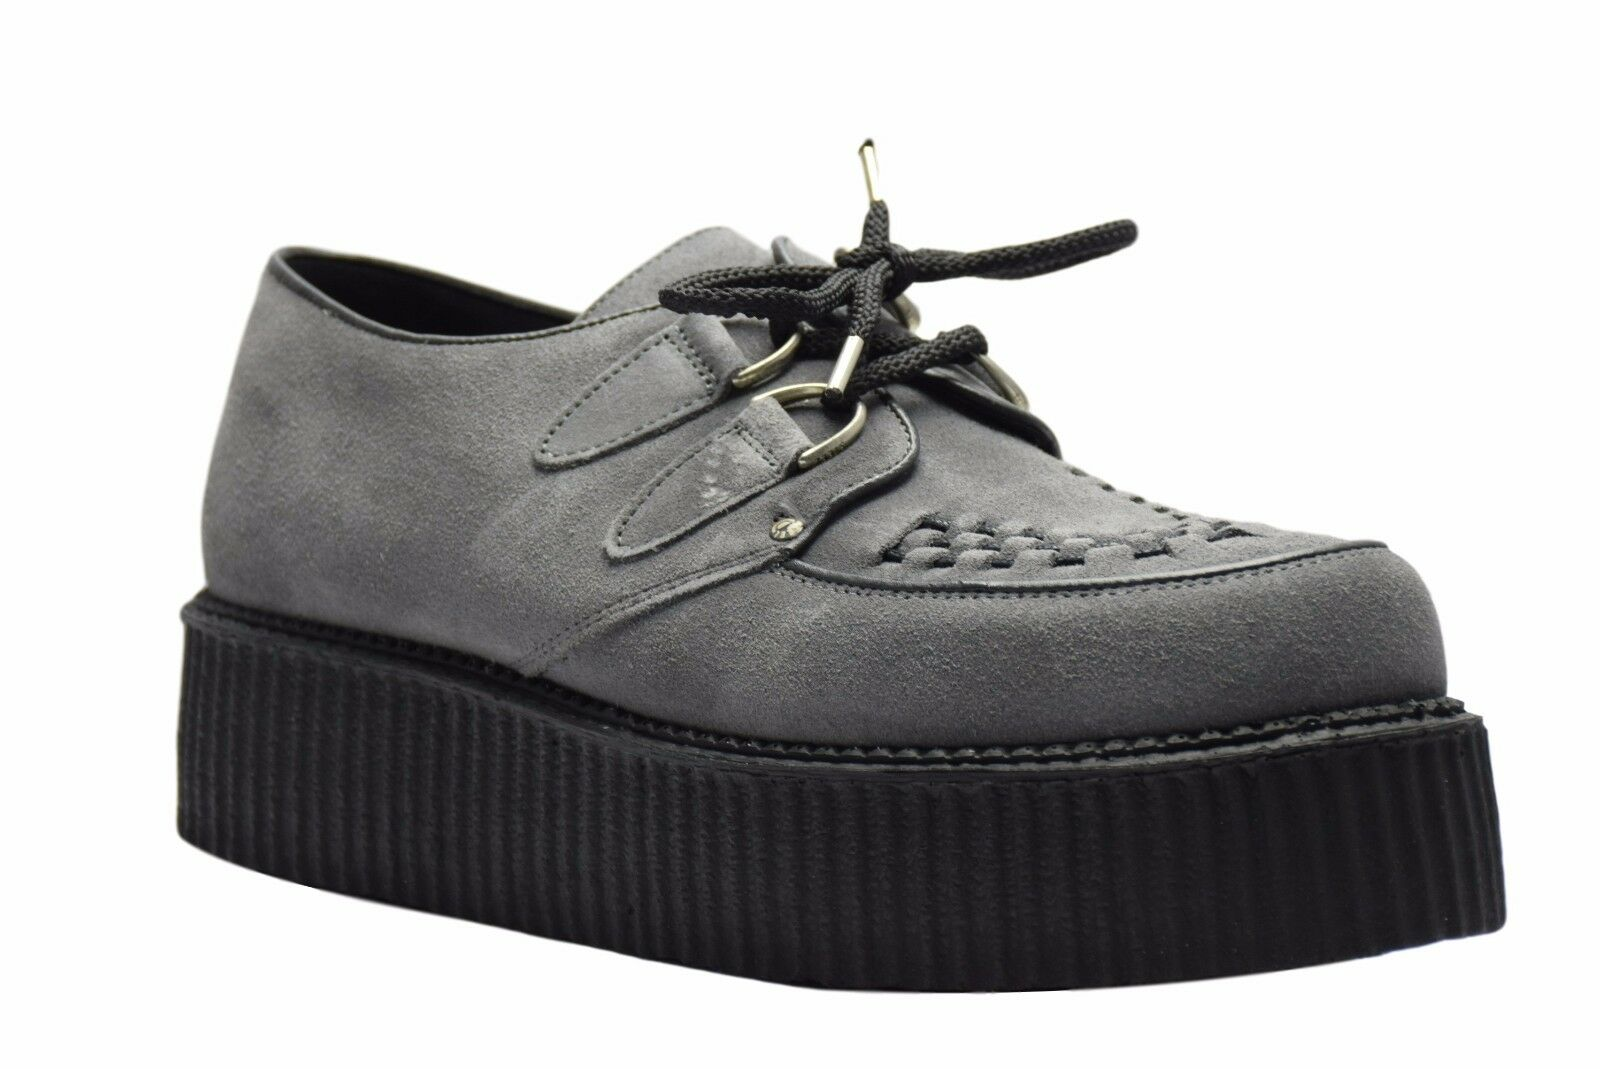 Steel Ground Schuhes Grau Suede Creepers High Sole D Ring Casual Rock Sc300Z134